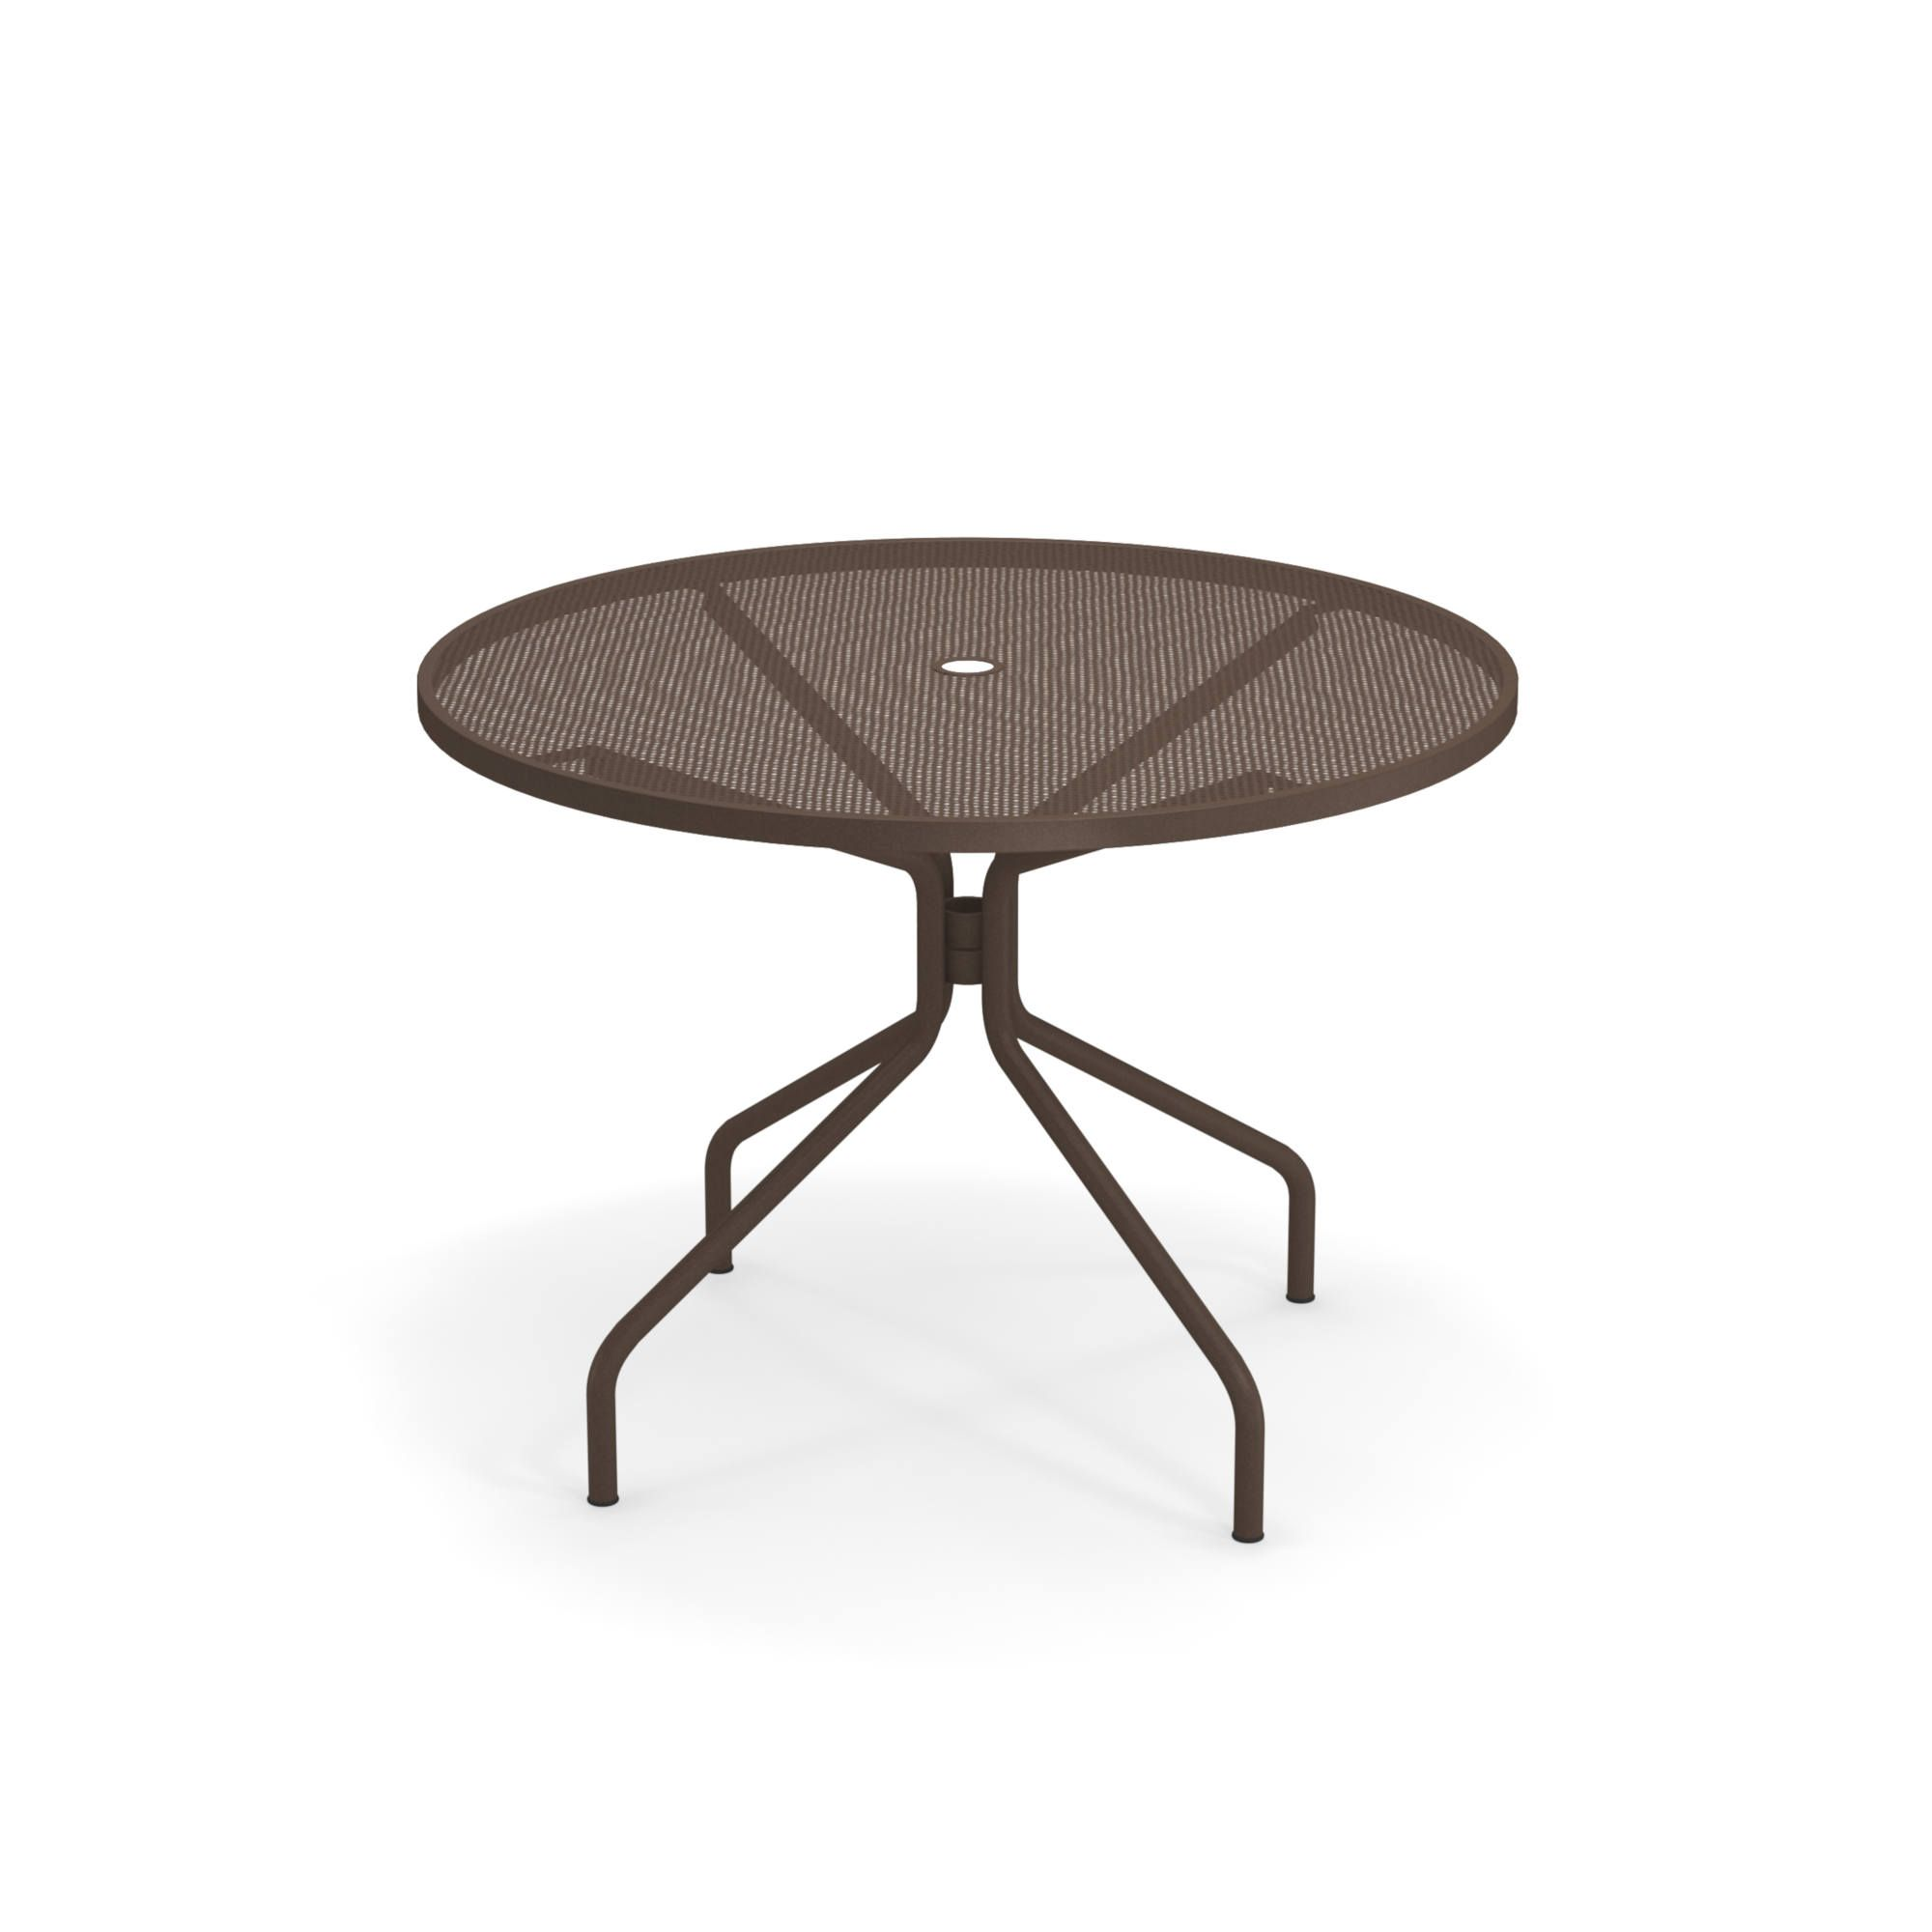 emuamericas, llc 813-41 table, outdoor